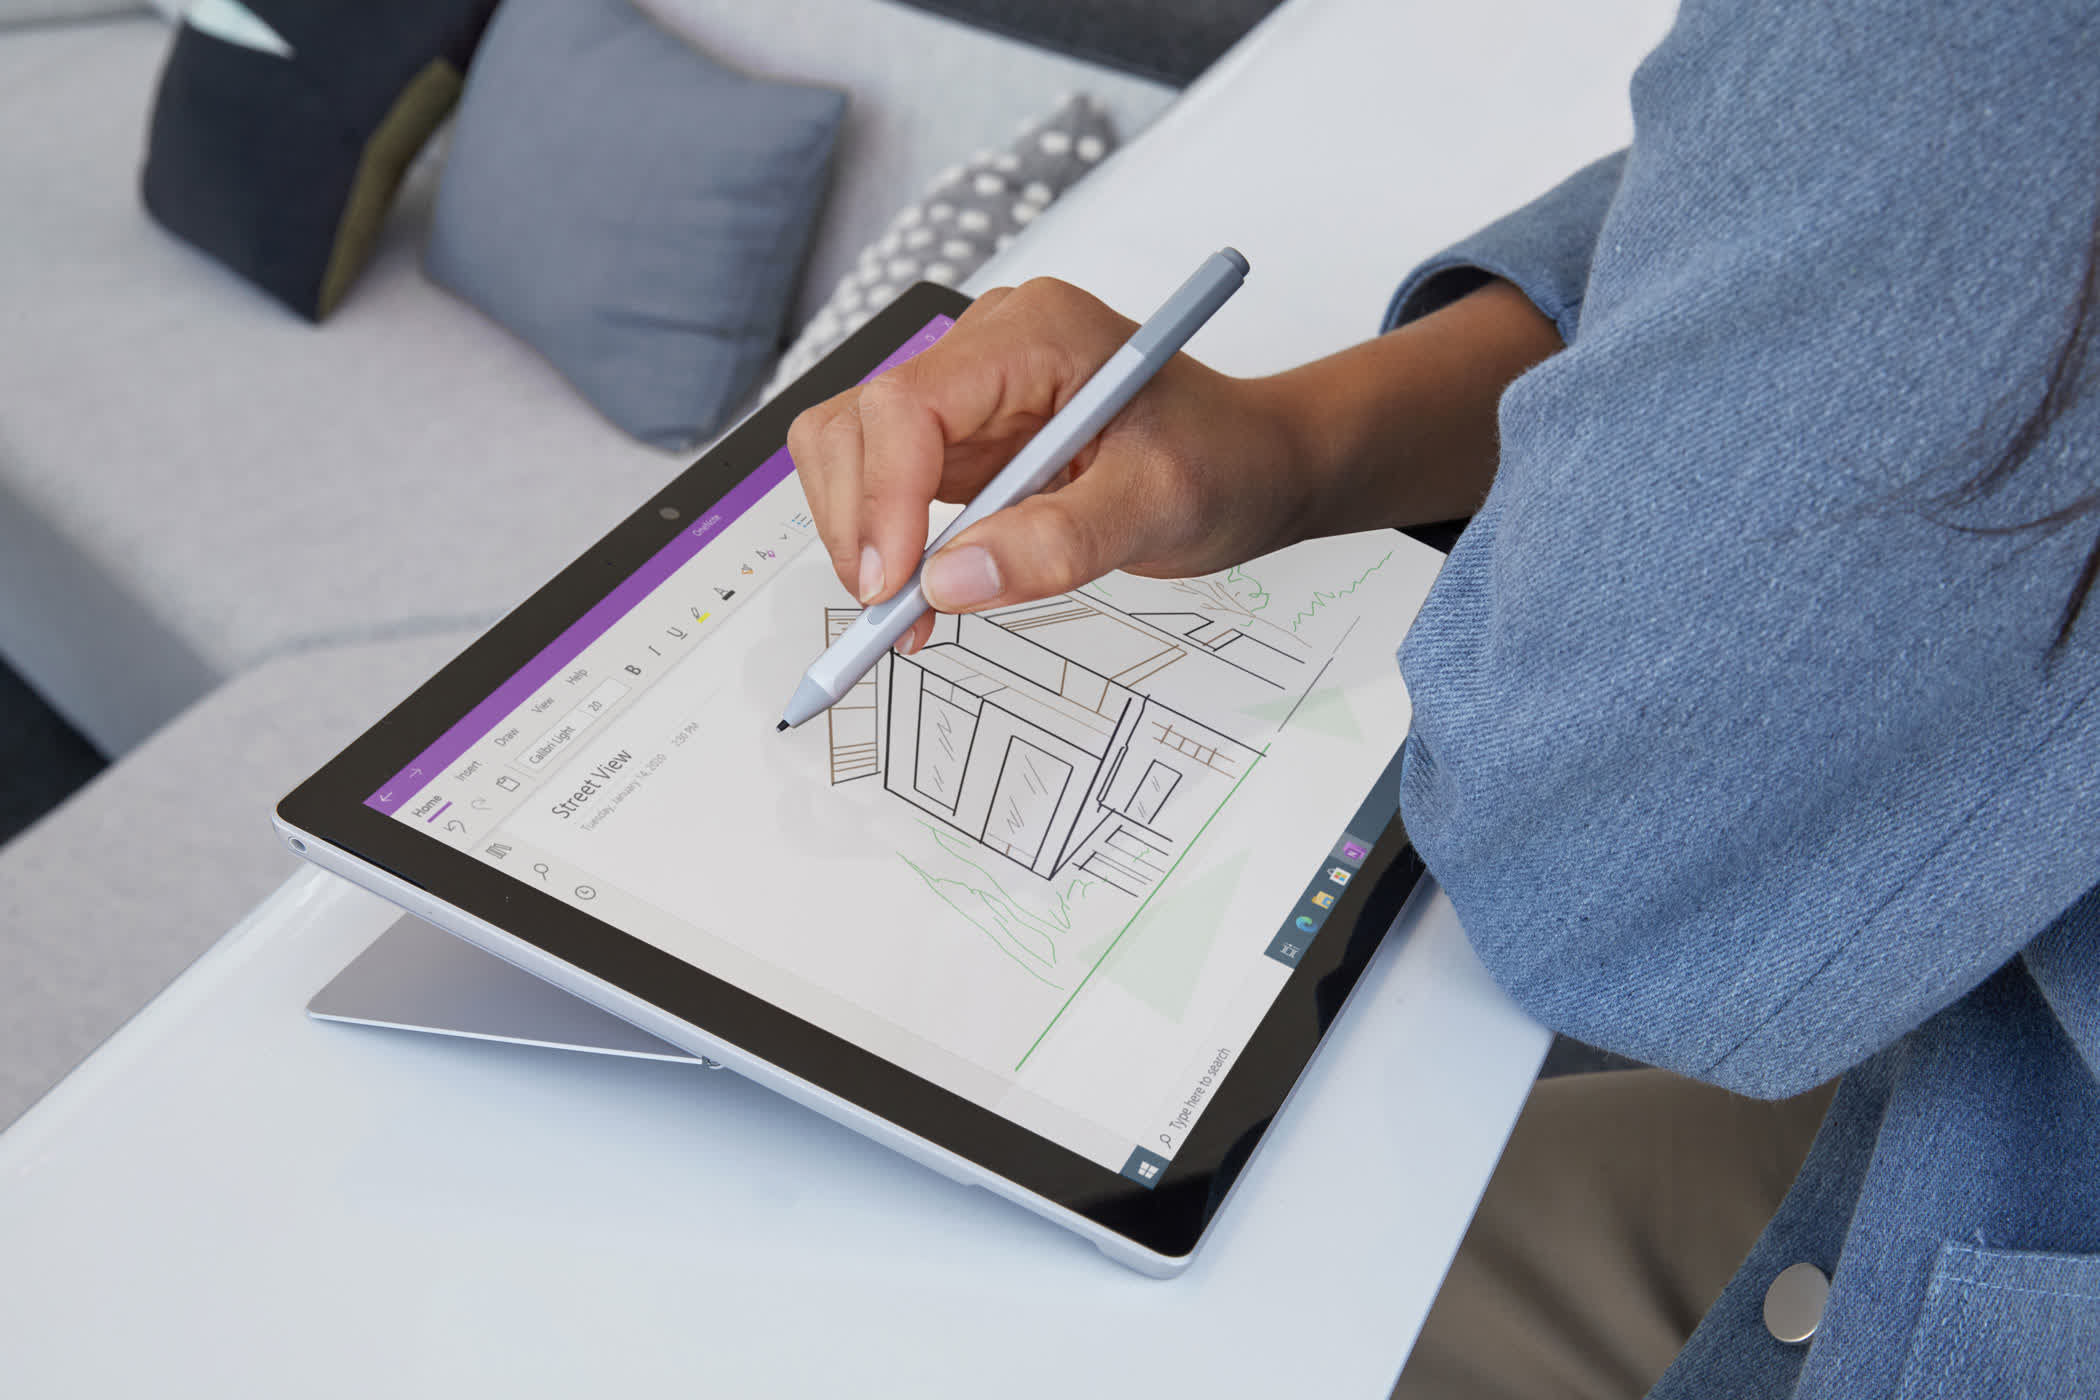 Microsoft Surface Pro 7+ comes with upgraded internals, removable SSD, and optional LTE support